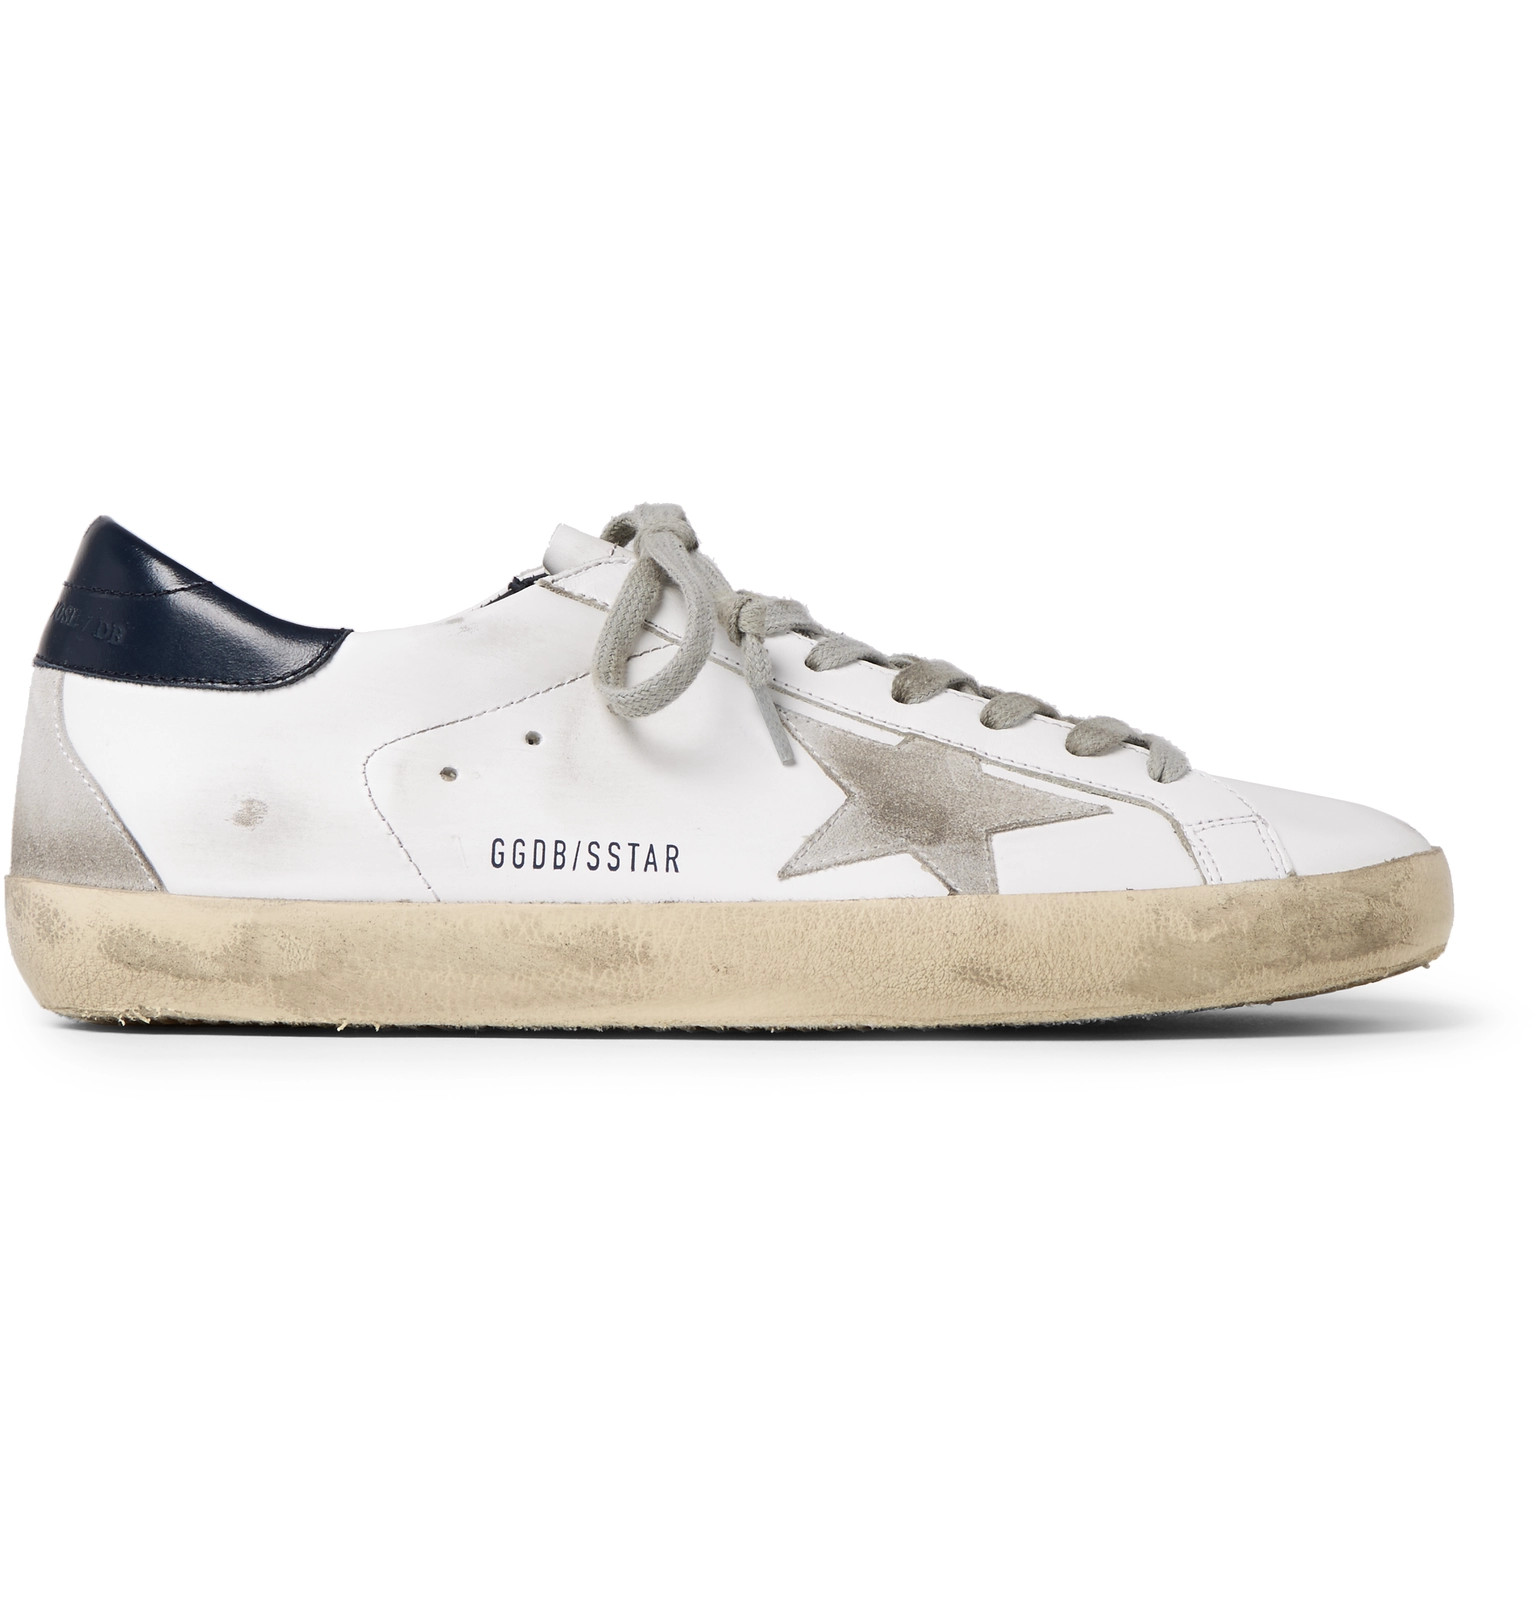 Goose And Golden Deluxe Leather Brand Superstar Distressed OxndwvqT